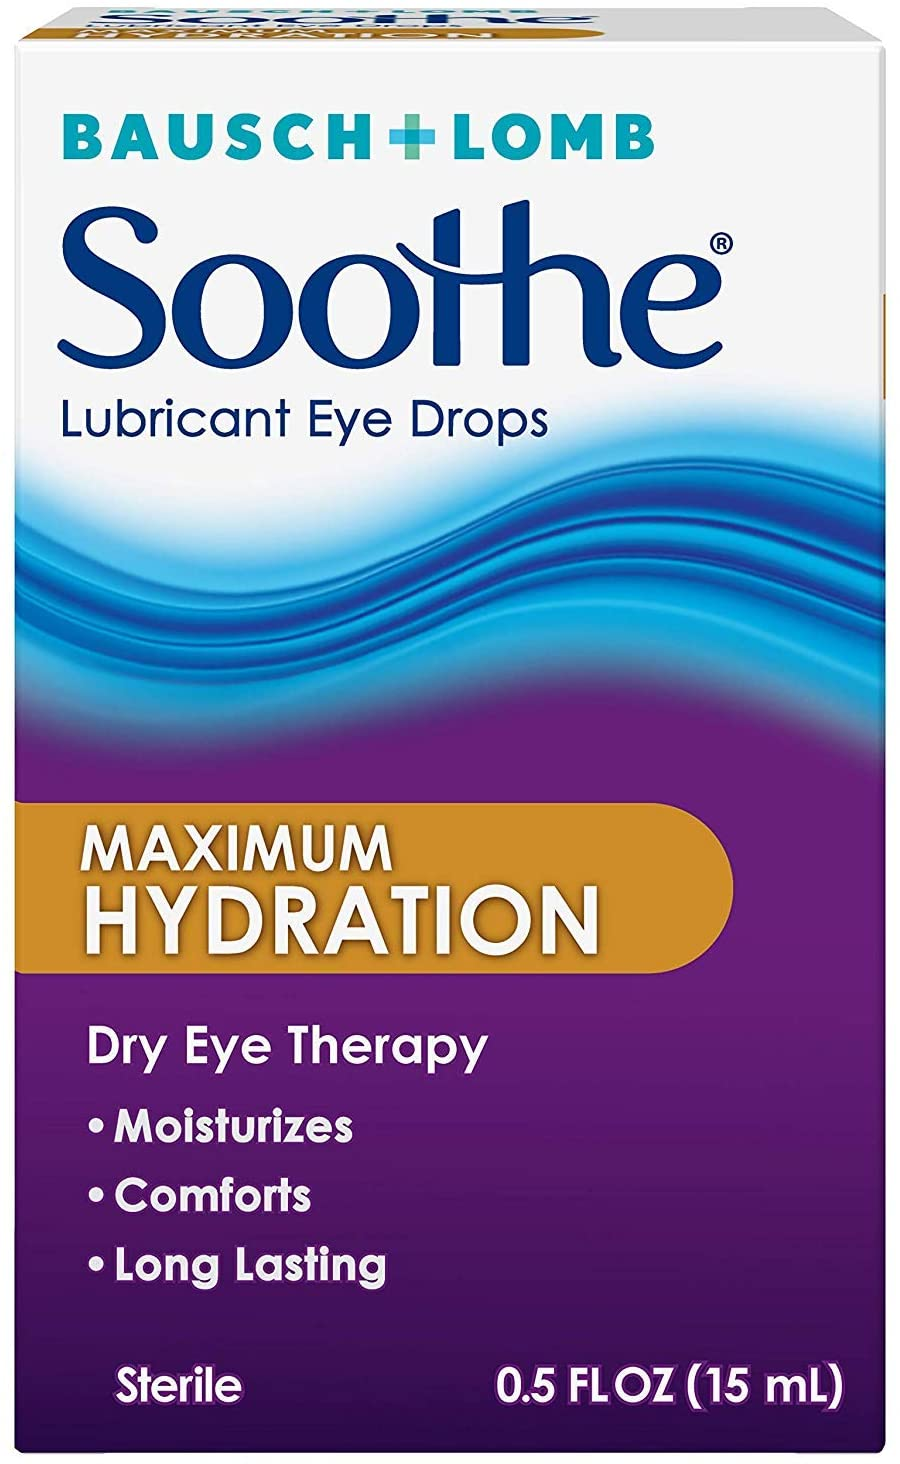 Bausch + Lomb Soothe Lubricant Eye Drops, Maximum Hydration 0.5 oz (Pack of 4)